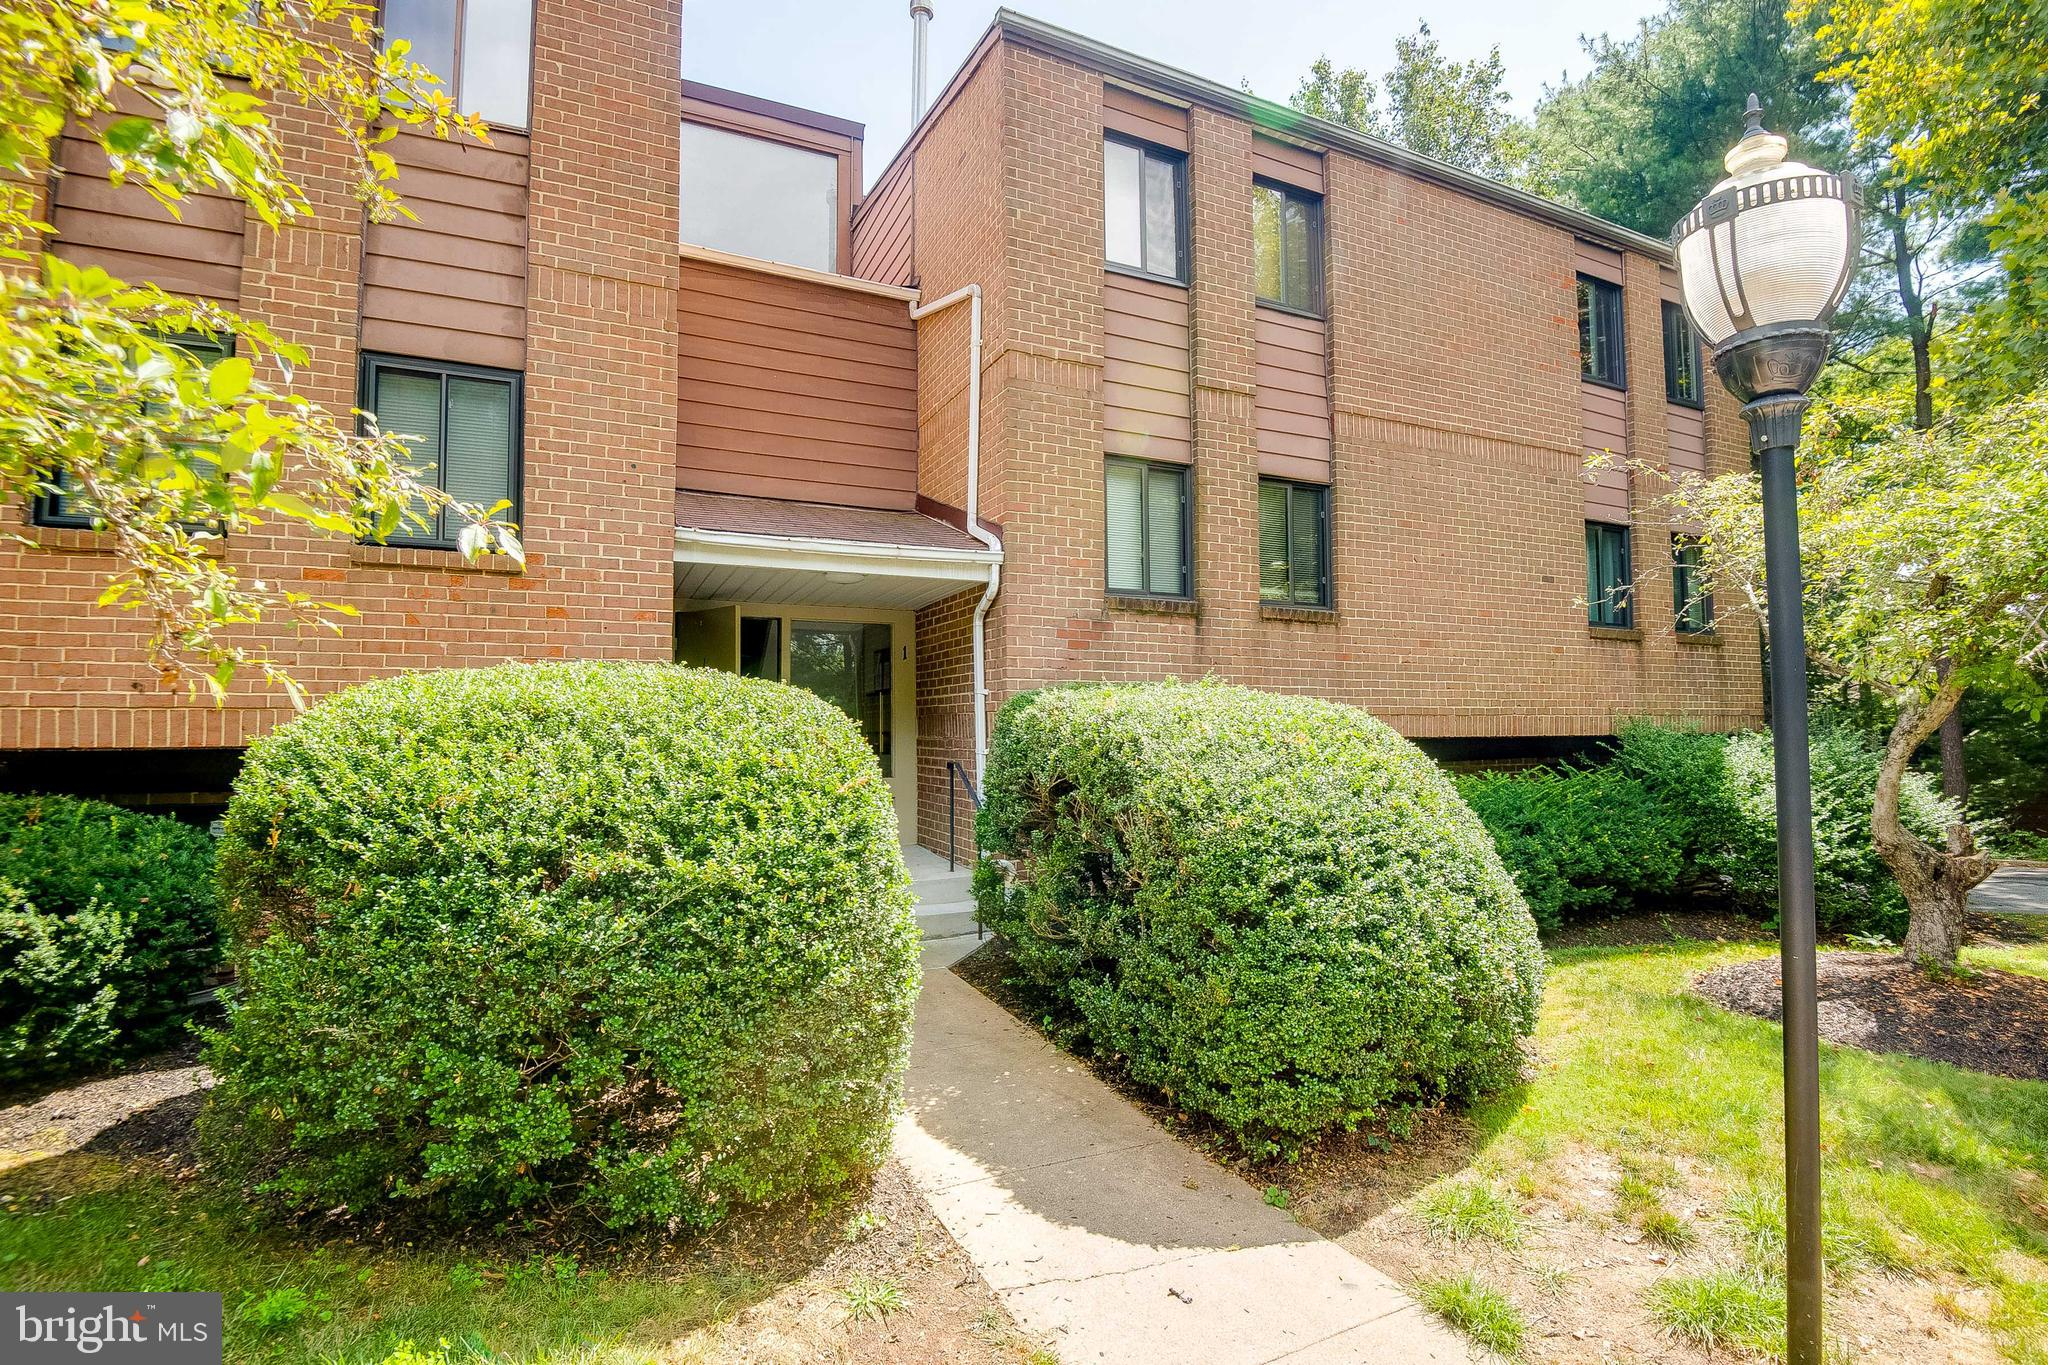 Spacious fully renovated 1 bedroom condo, with Jacuzzi bath tub, cozy layout and ample storage. Kitc